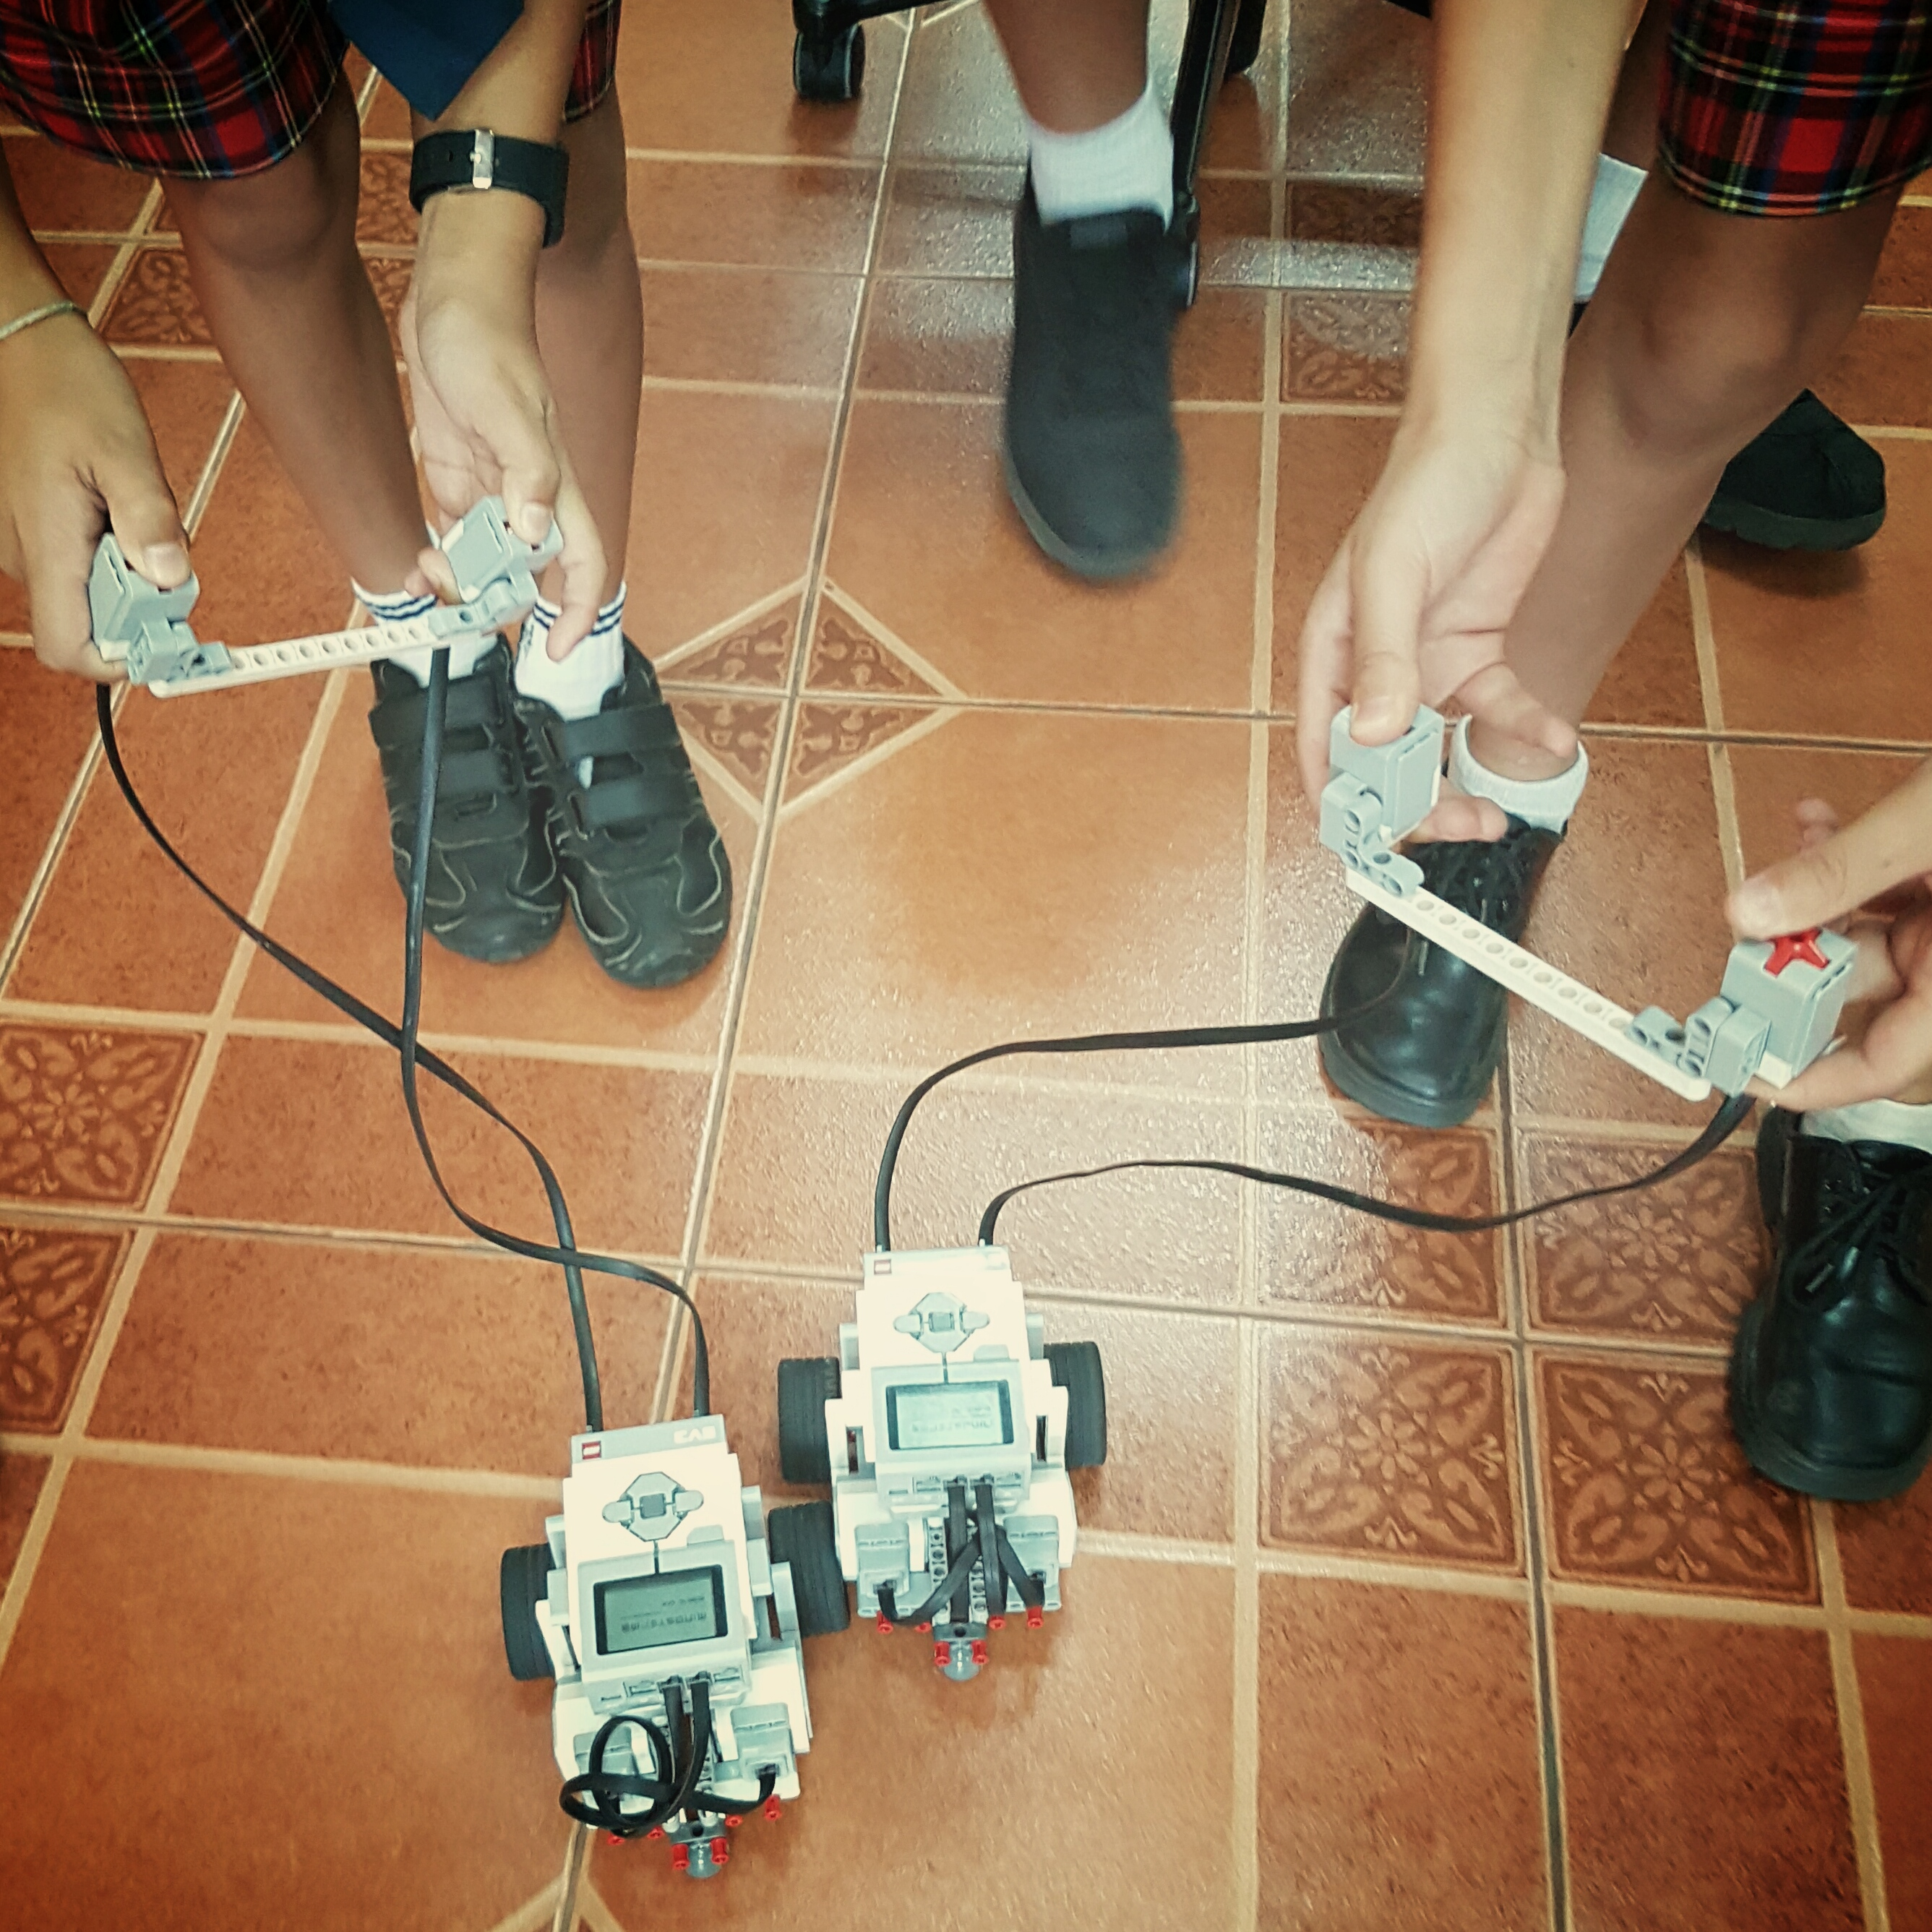 Teaching robotics in the classroom